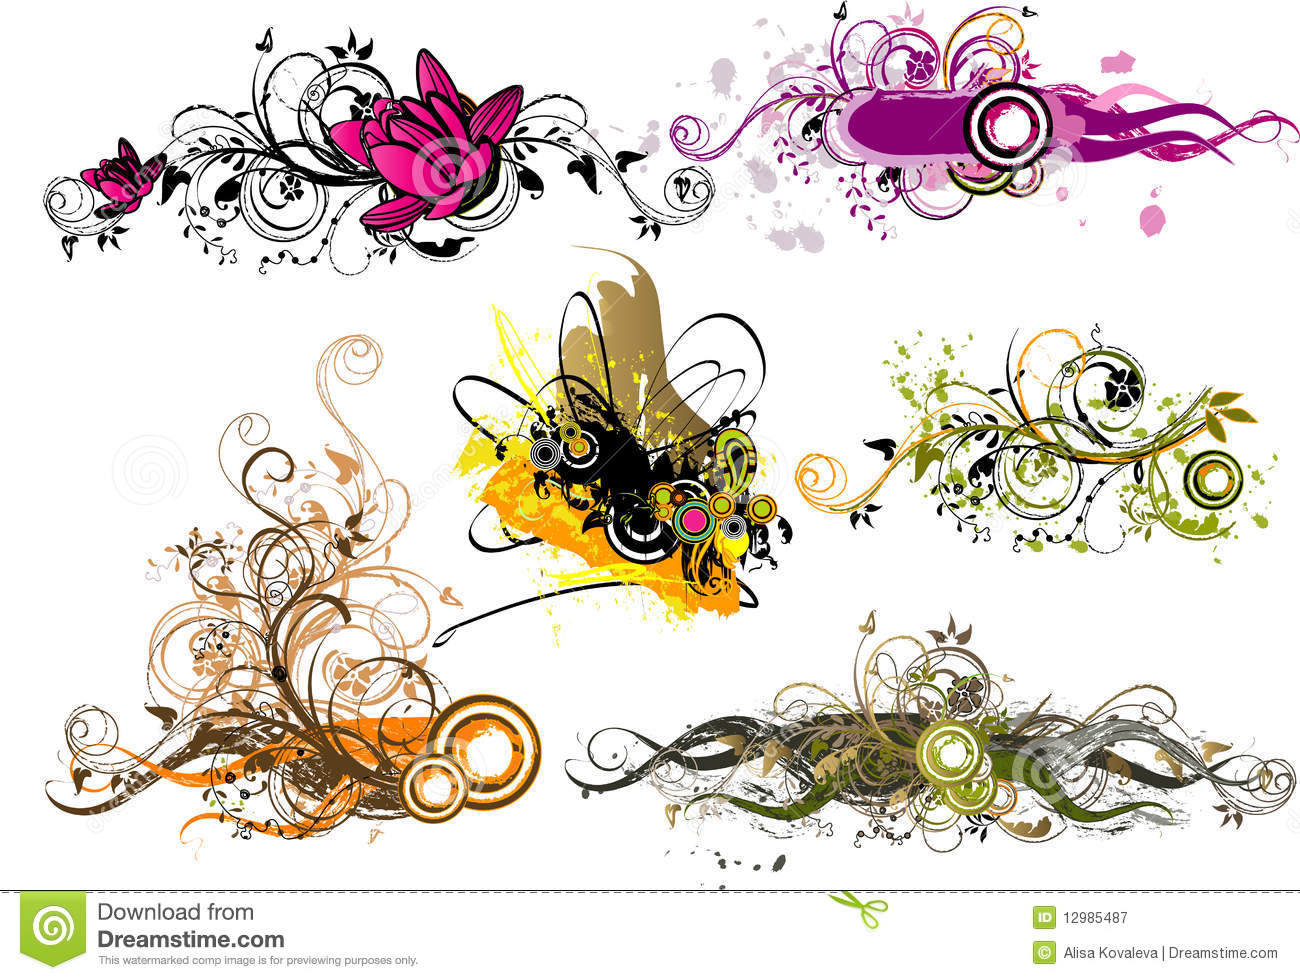 Abstractions Royalty Free Stock Photography - Image: 12985487